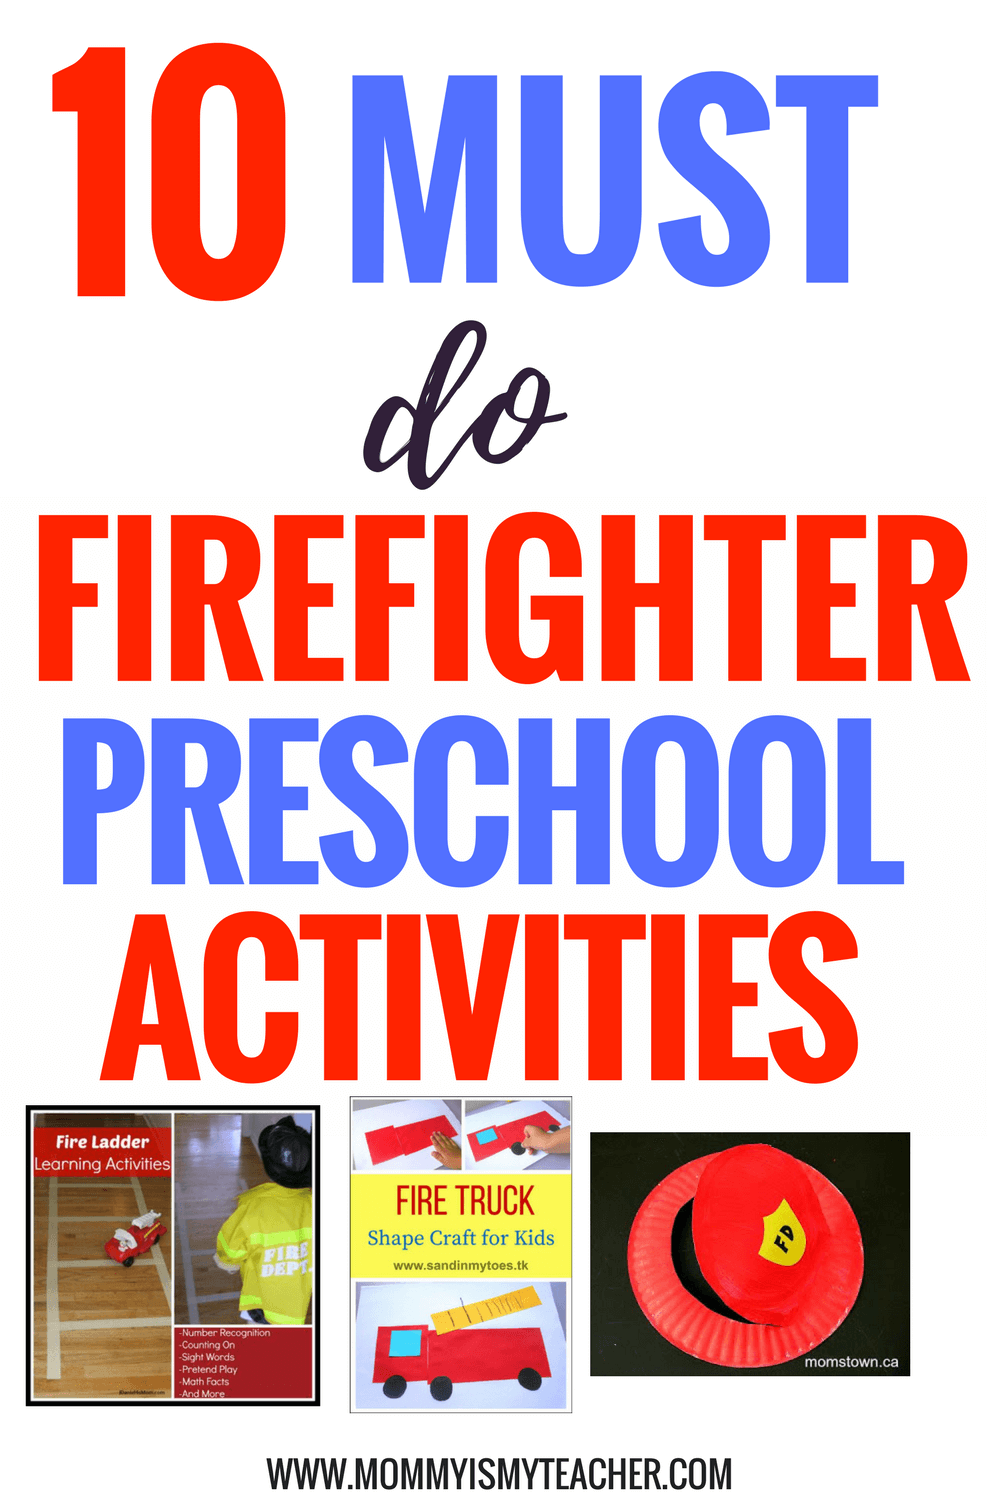 Wow, I love all these fire safety and firefighter preschool activities! They are perfect for my preschool homeschool curriculum!